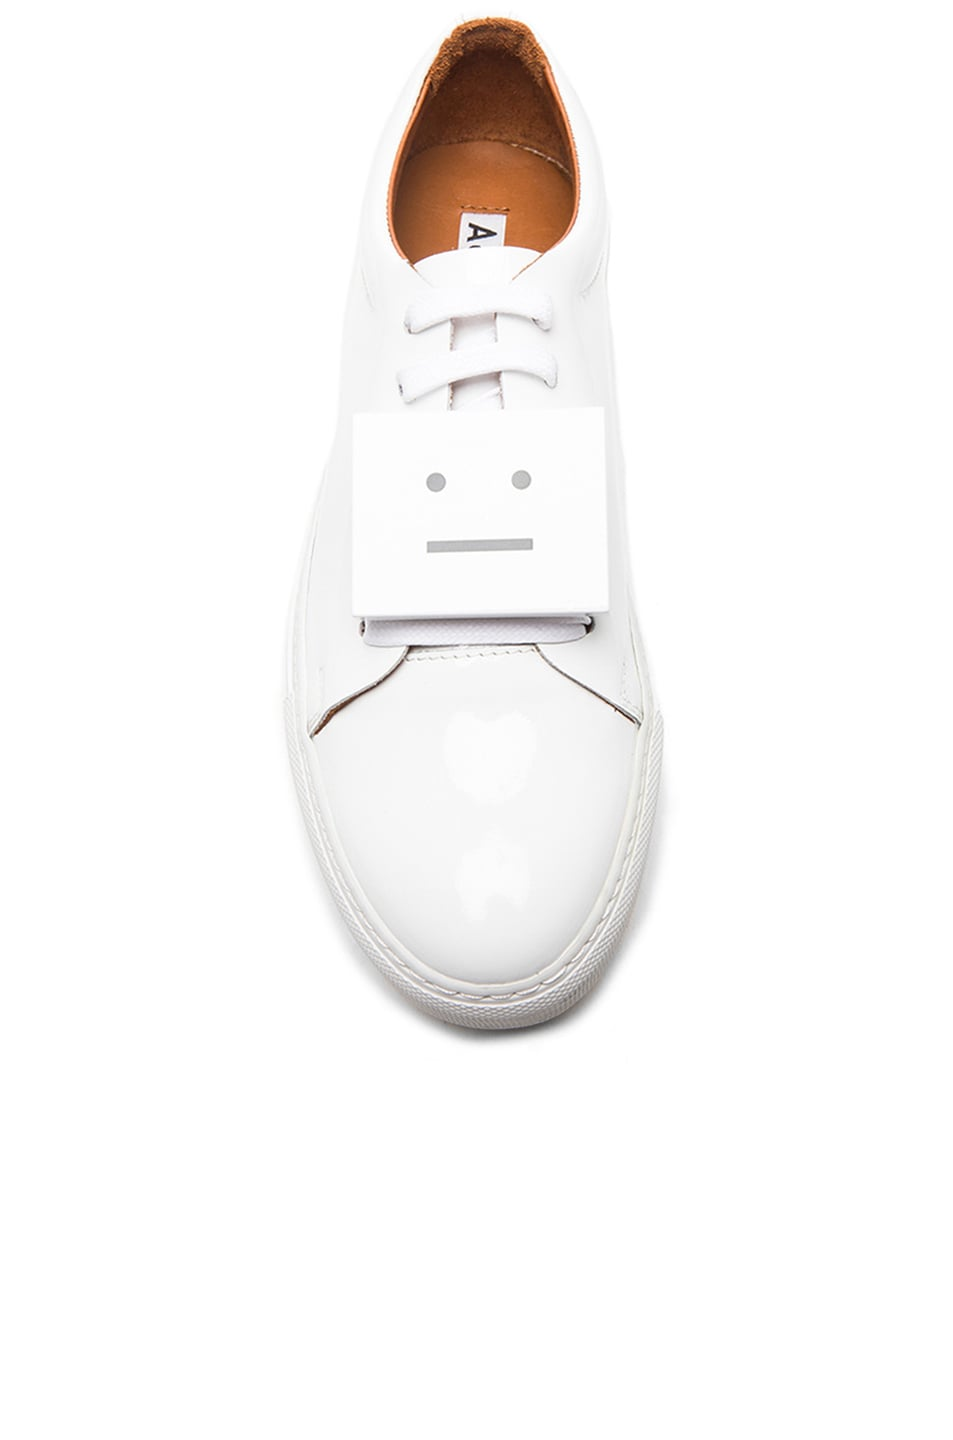 Adriana leather sneakers Acne Studios aNR62a